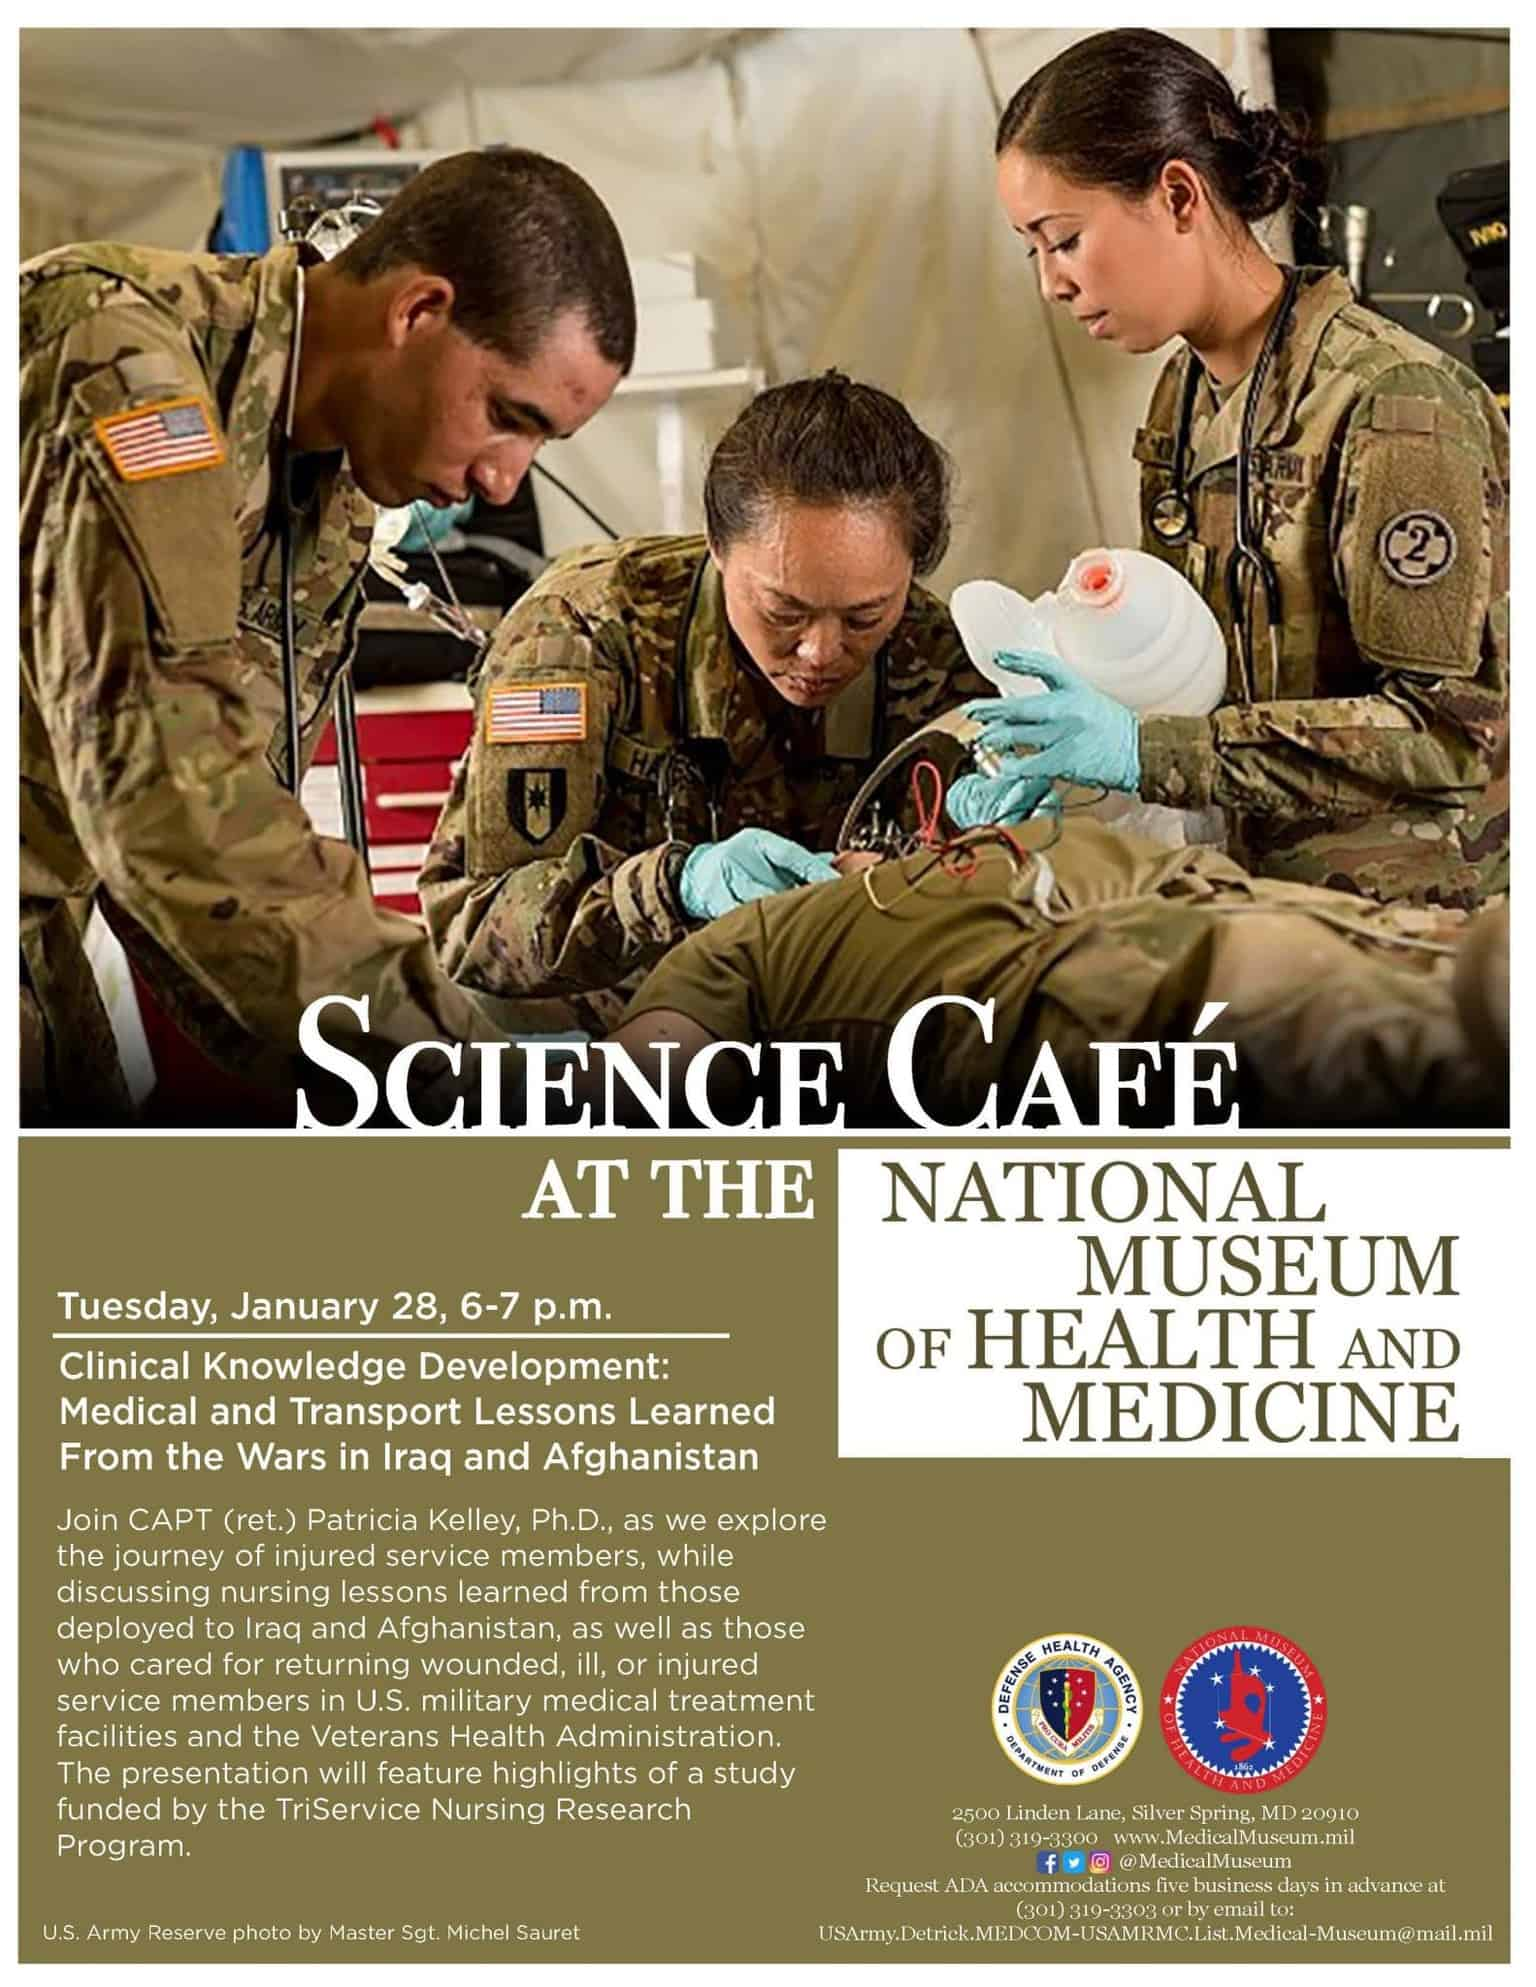 Medical Museum Science Café: Clinical Knowledge Development - Medical and Transport Lessons Learned From the Wars in Iraq and Afghanistan